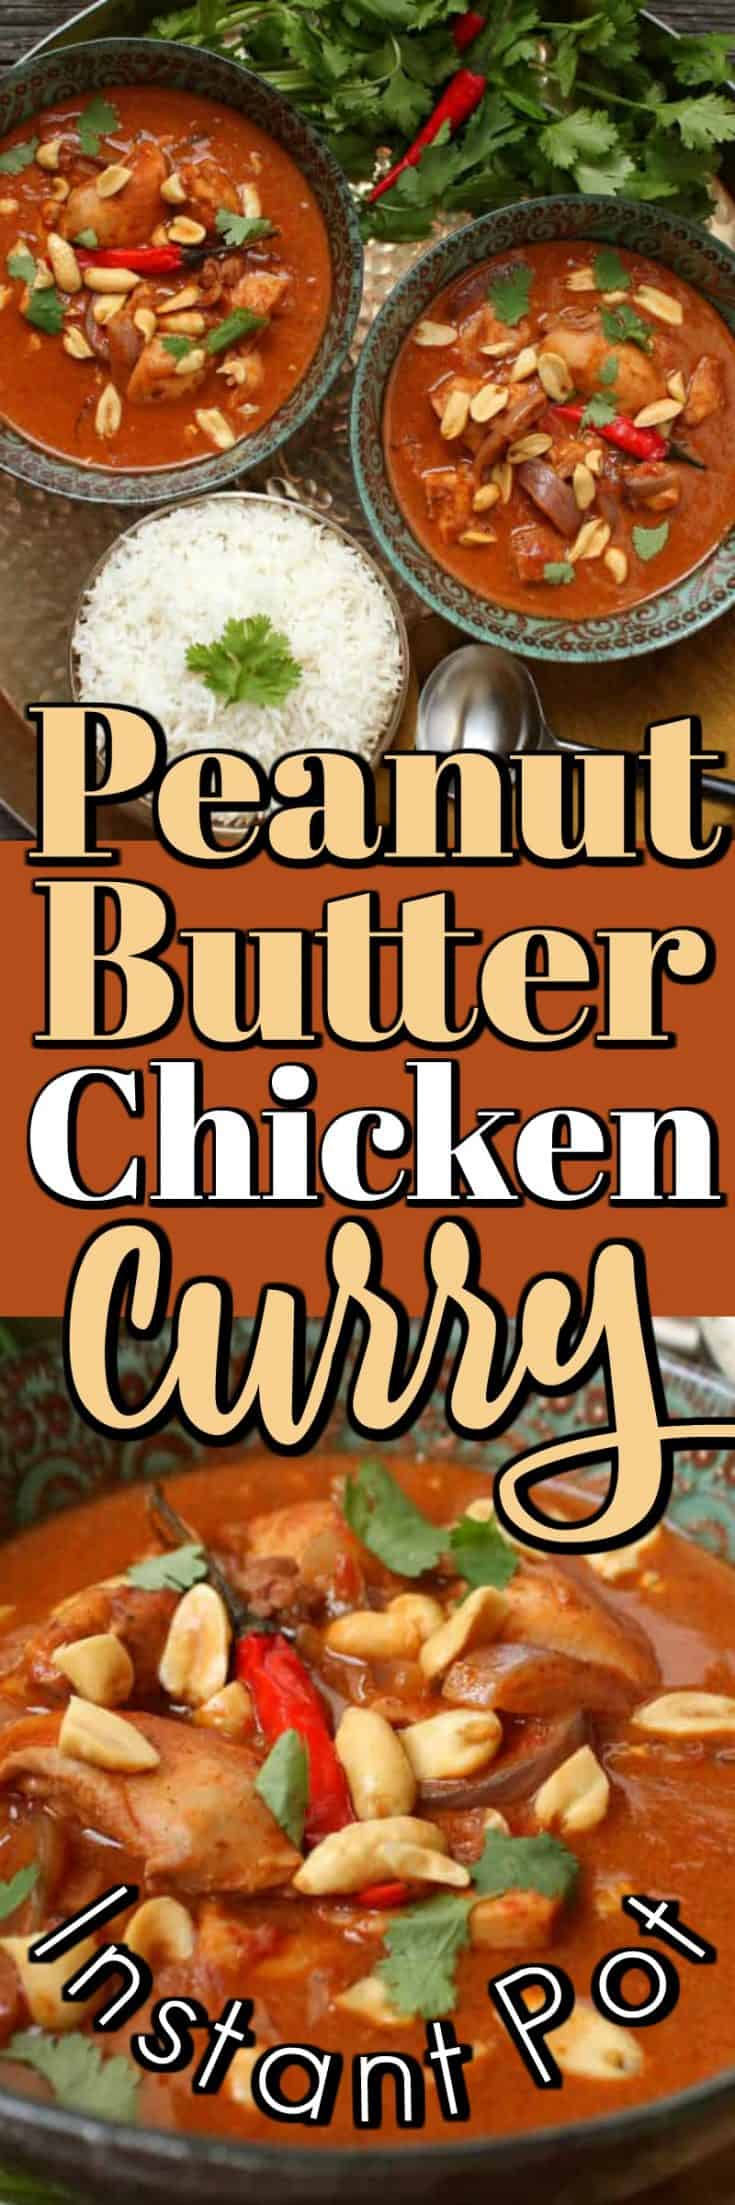 This easy but amazing Instant pot meal Peanut Butter Chicken Curry is made in no time. It is so good it could be served to company but simple enough to enjoy any day!! #peanutbutter #chicken #curry #instantpot